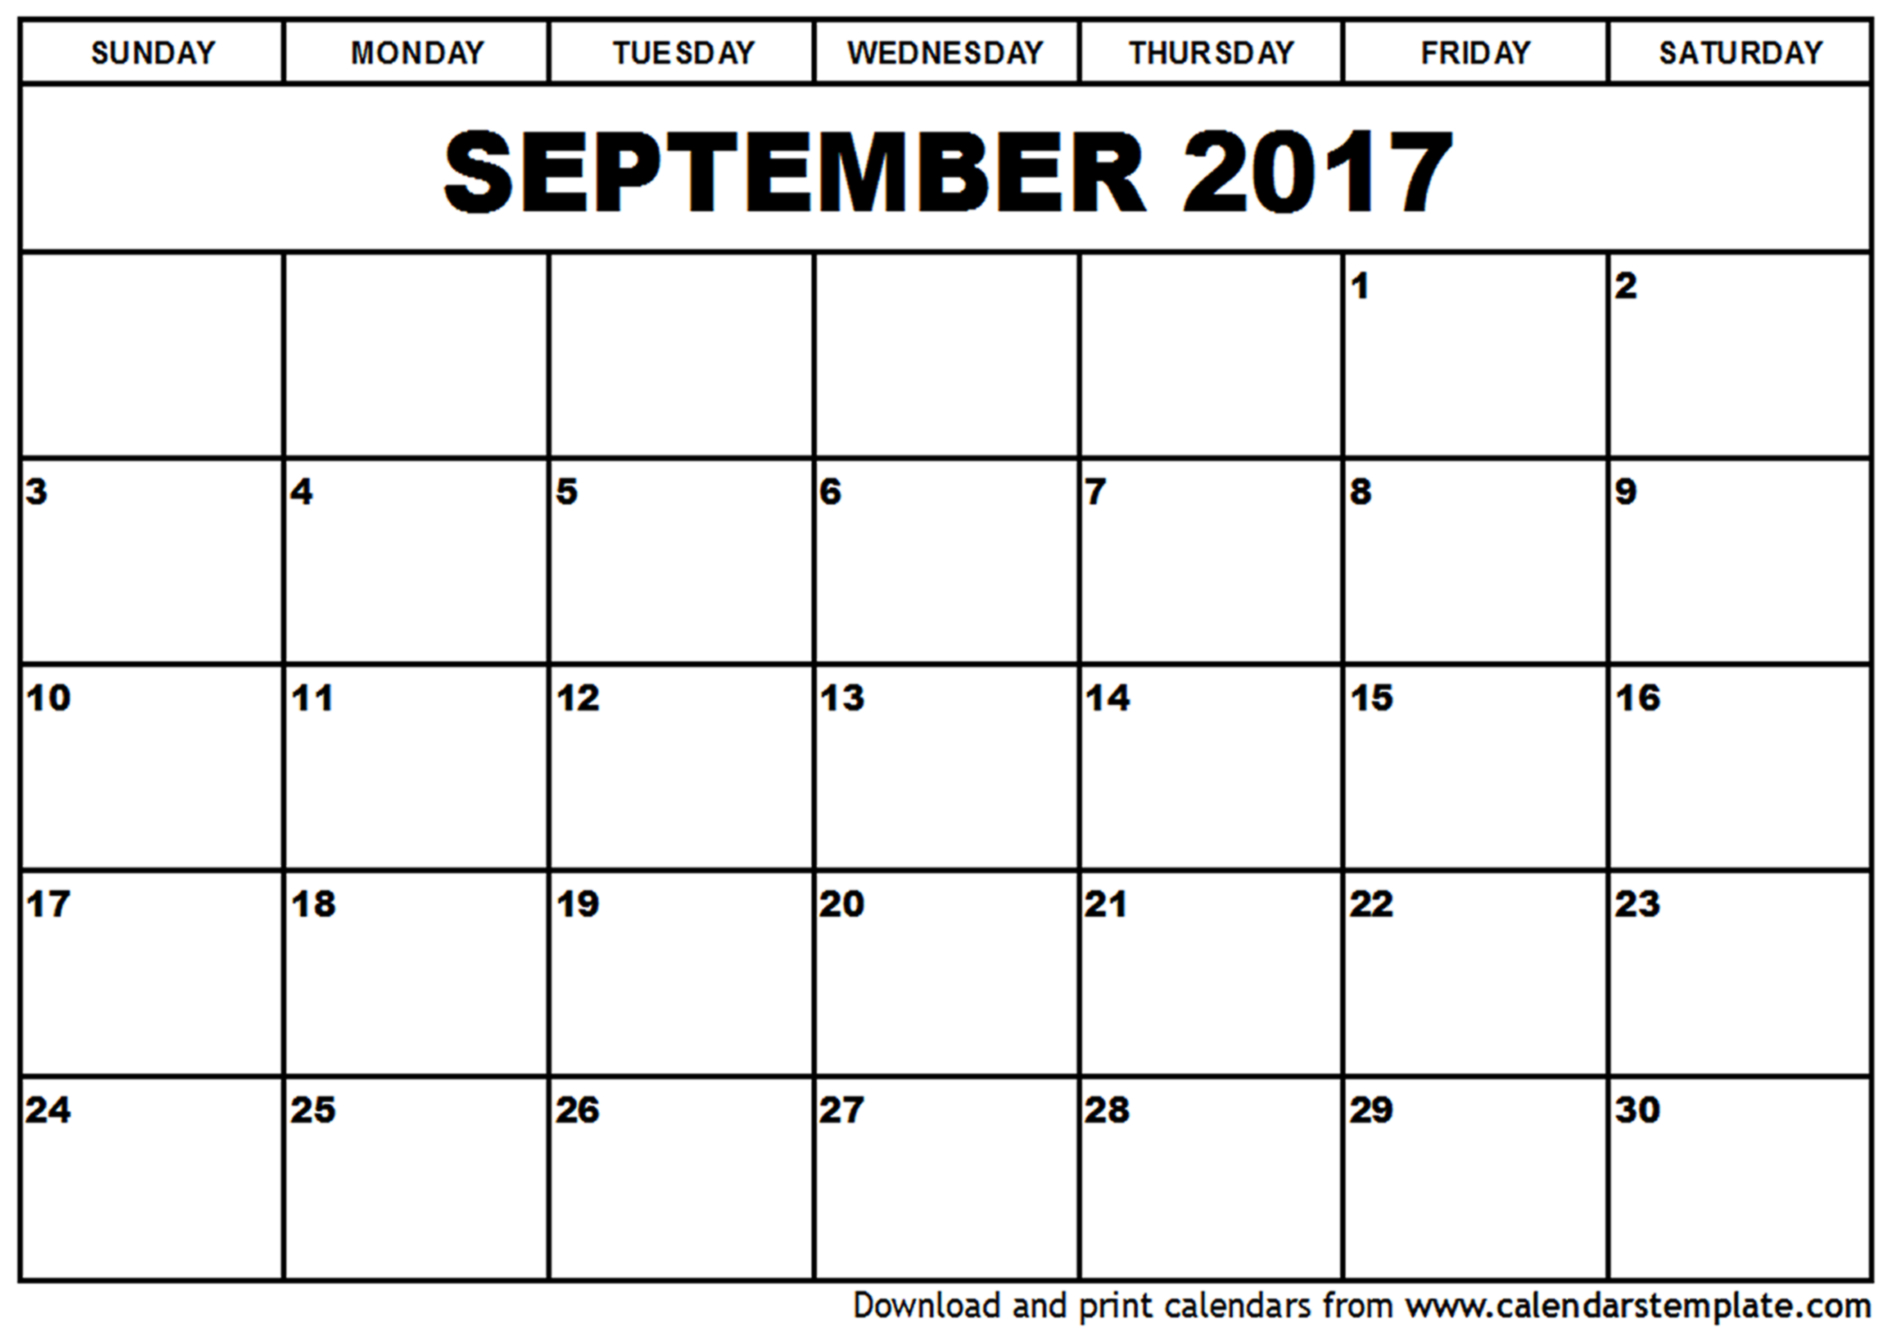 September 2017 Calendar Excel | 2017 calendar with holidays